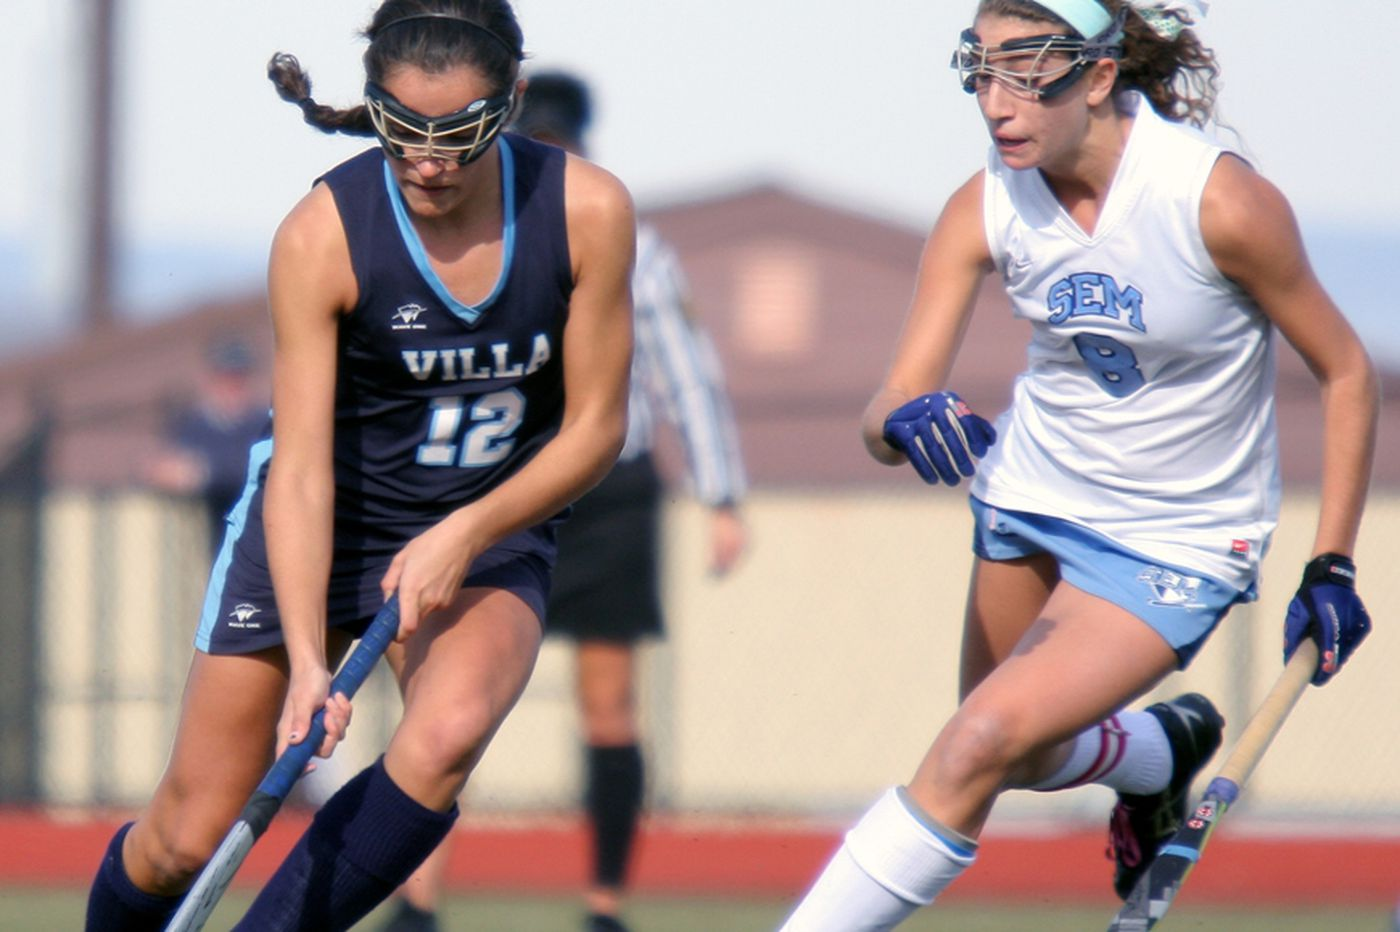 Thursday's Southeastern Pa. roundup: Villa Maria field hockey upsets Radnor in District 1 Class 2A playoffs